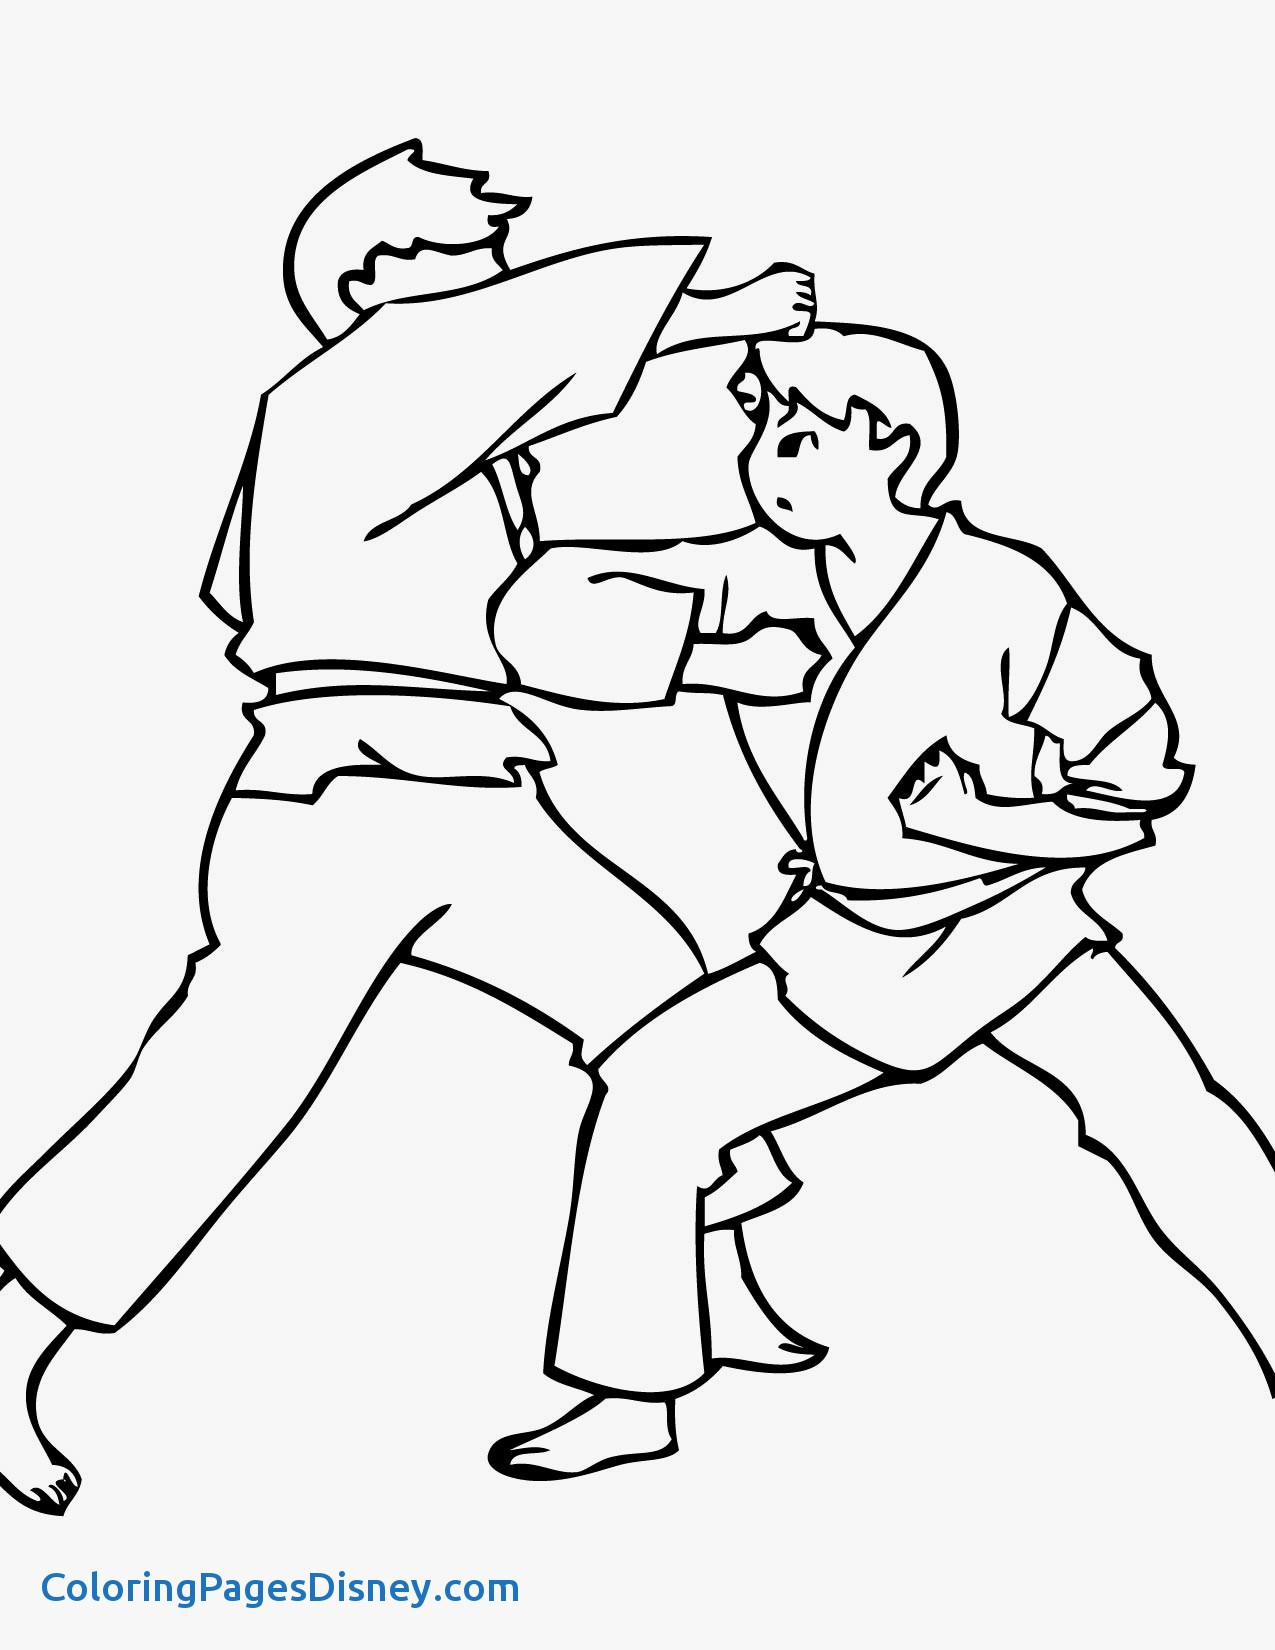 Karate Coloring Pages 8 #2124 - Free Printable Karate Coloring Pages